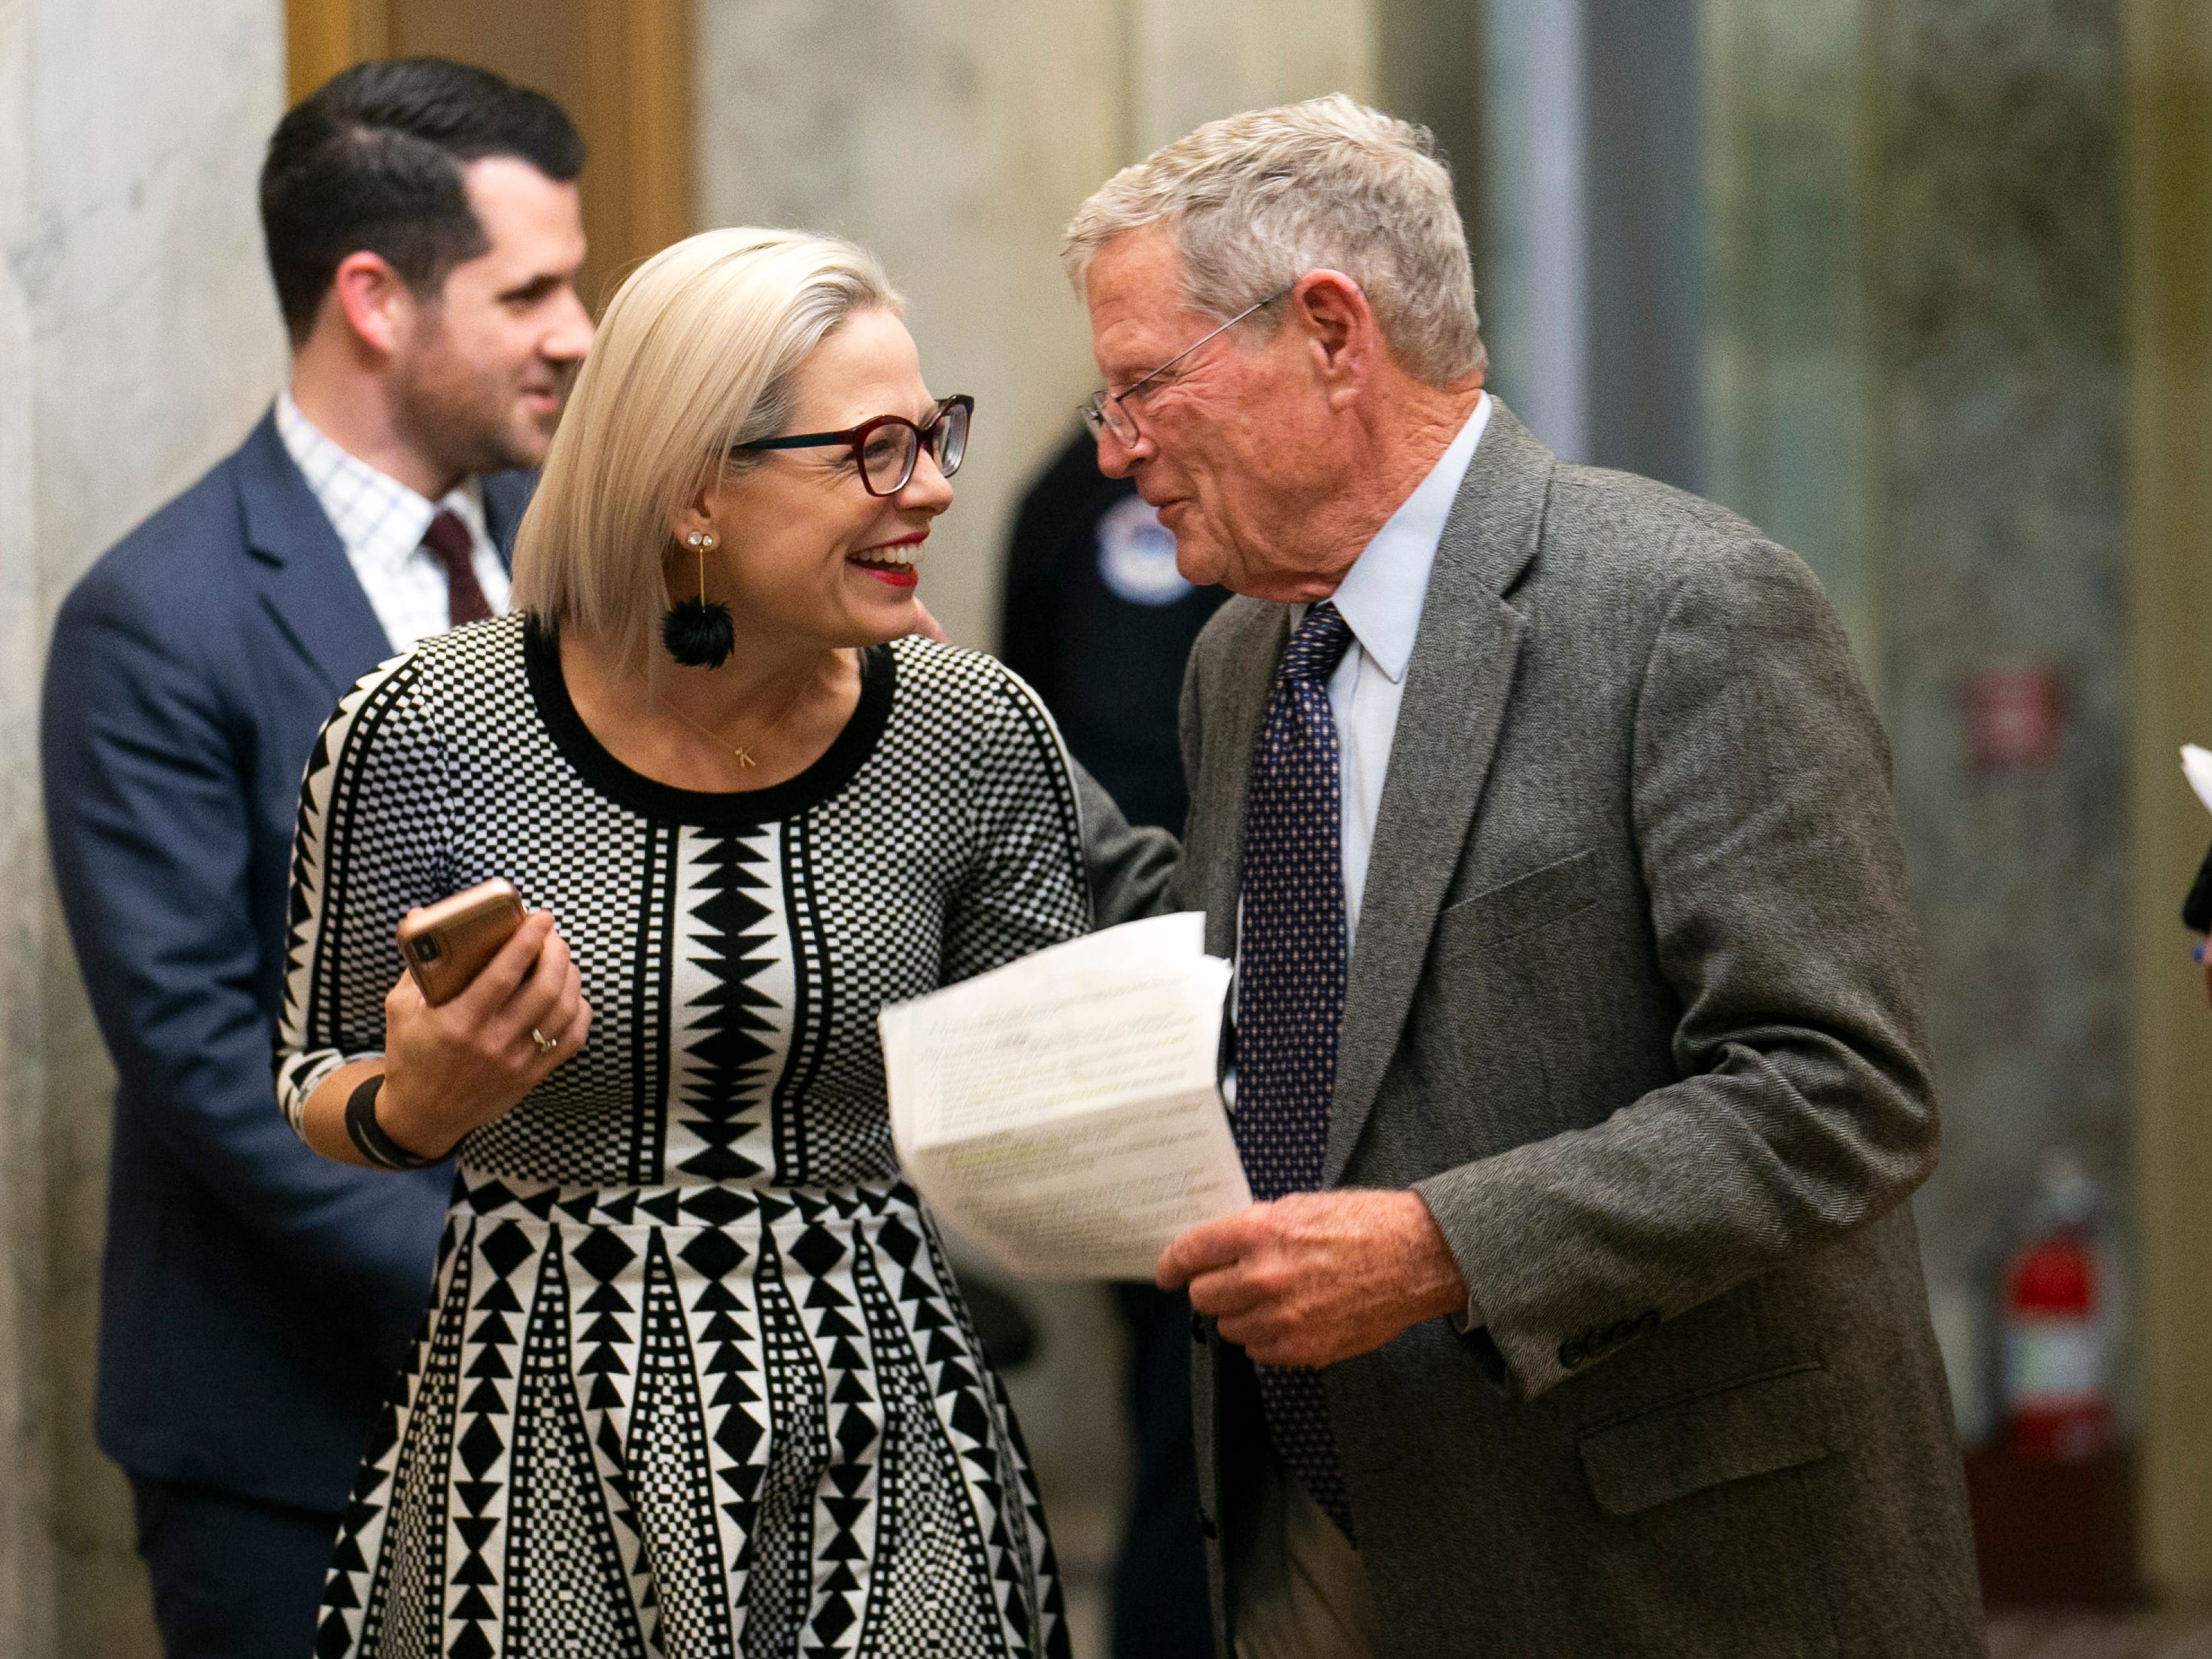 U.S. Senators Kyrsten Sinema, D.-Ariz., (left) and Jim Inhofe, R-Okla., share a moment after arriving in the U.S. Senate Building at the U.S. Capitol in Washington DC for a Monday night vote on Feb. 4, 2019.